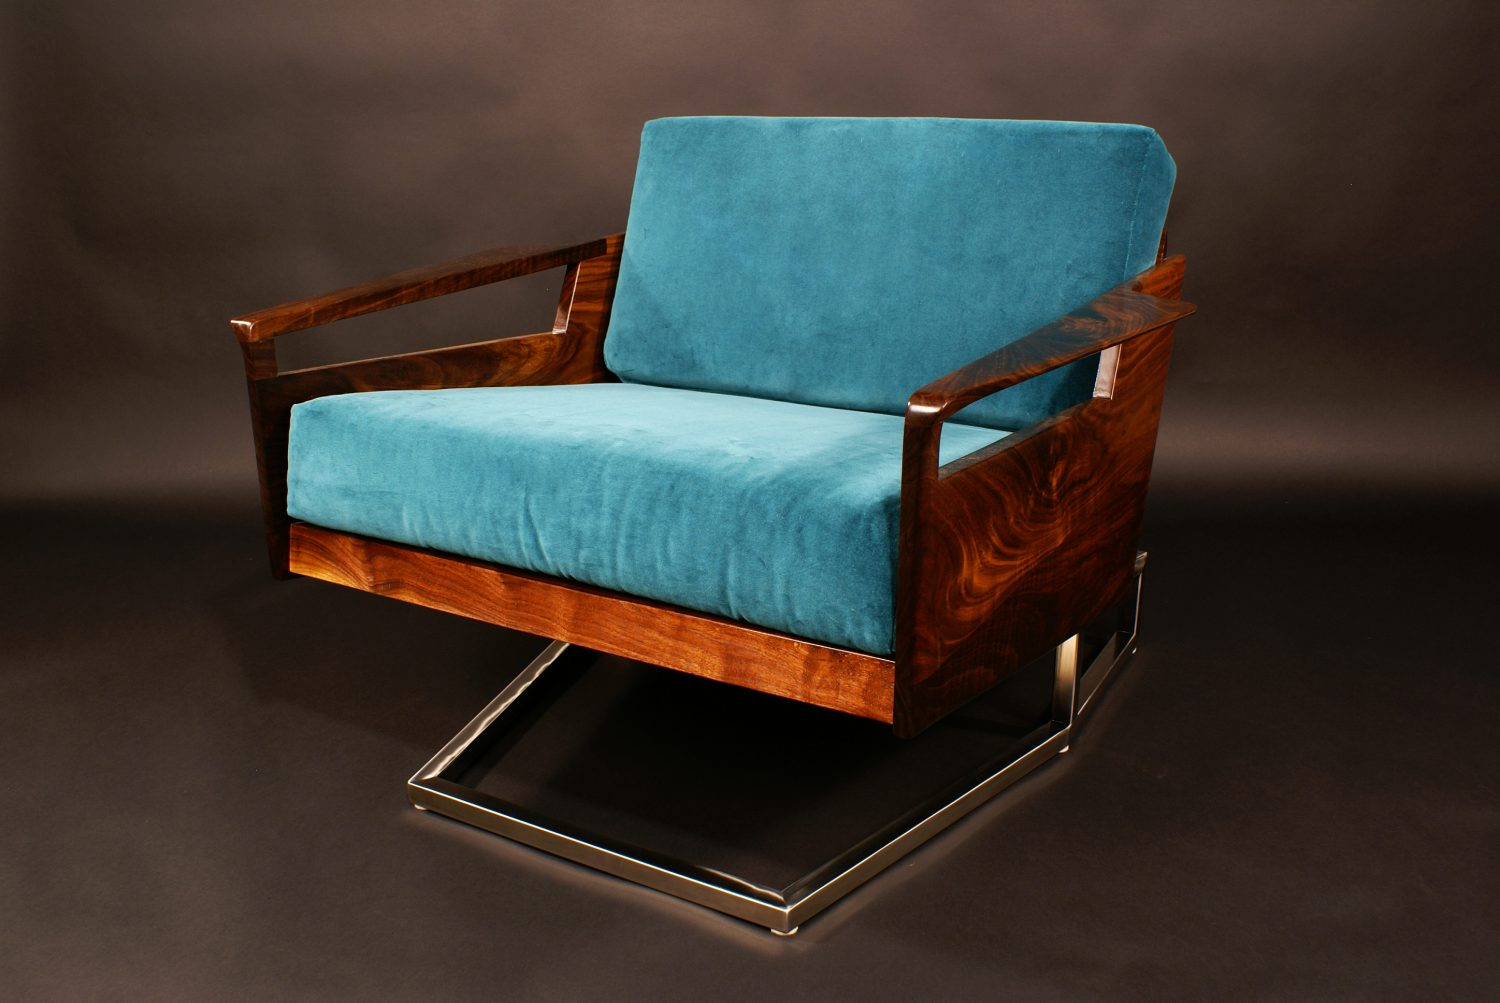 Alexander giray schair by Architectural Digest Show 2019 Top Stands architectural digest show 2019 top stands ARCHITECTURAL DIGEST SHOW 2019 TOP STANDS alexander Giray mid century design armchair